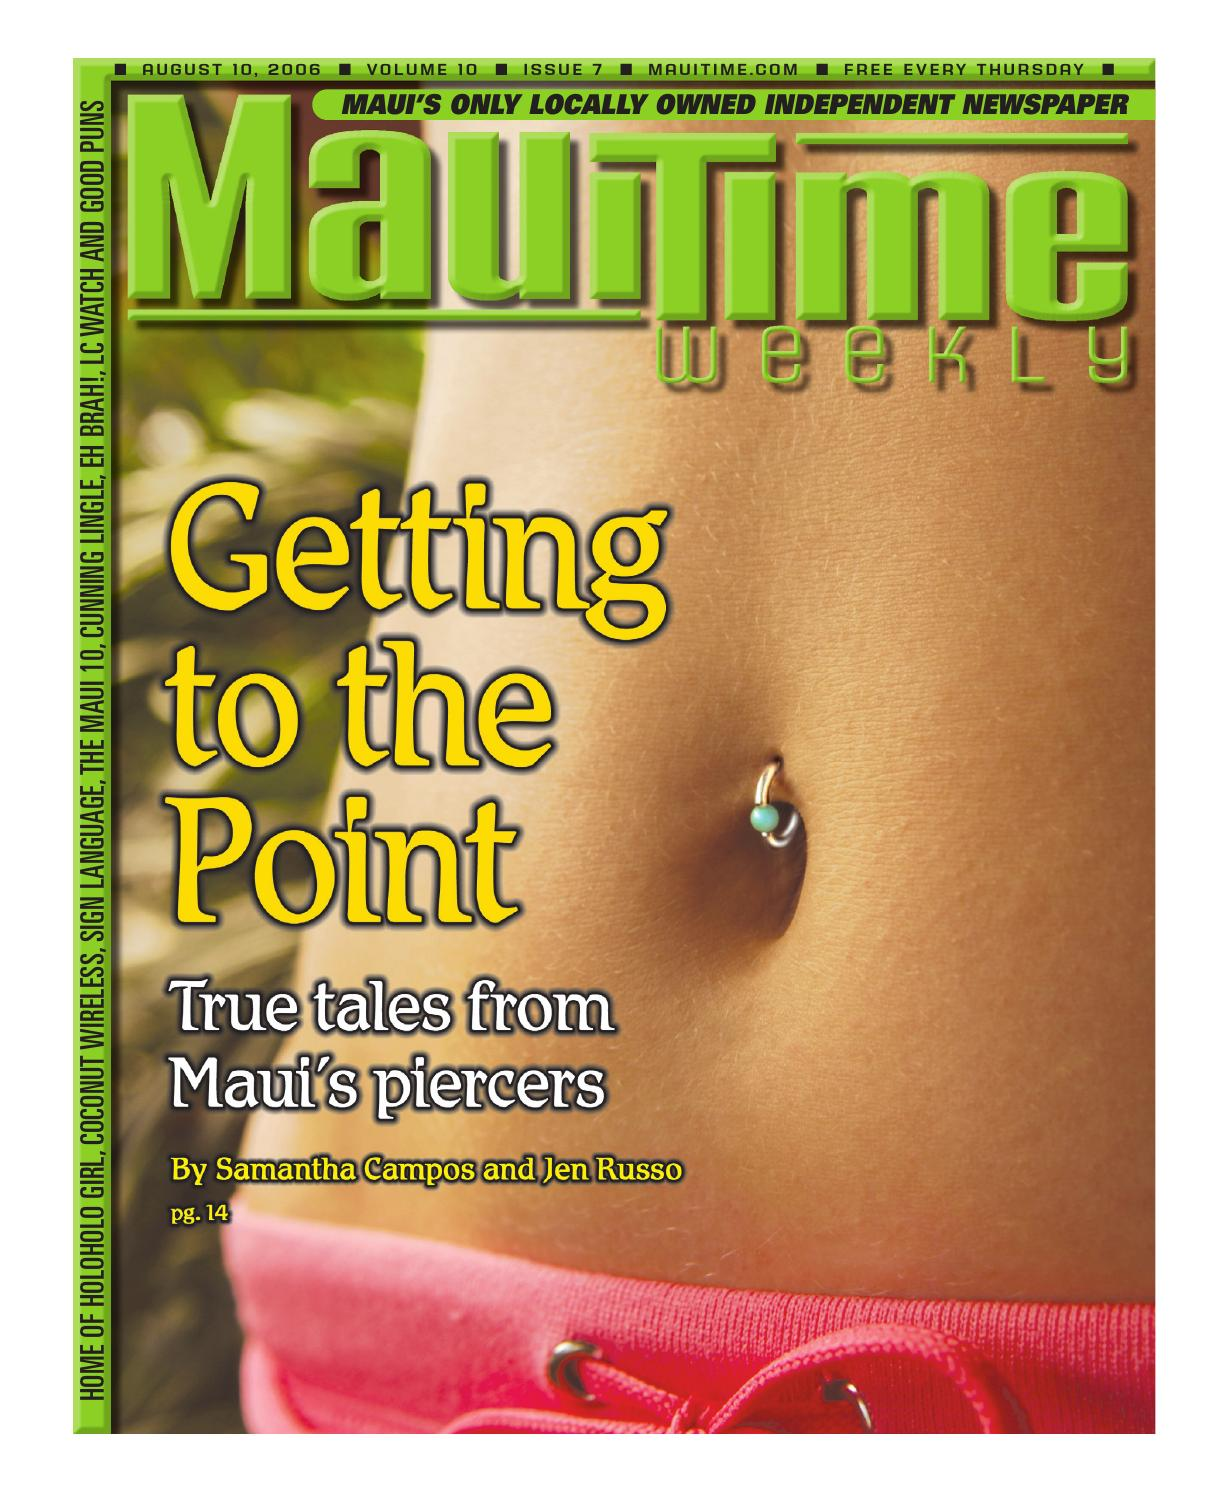 10.07 Getting To The Point, August 10, 2006, Volume 10, Issue 7, MauiTime